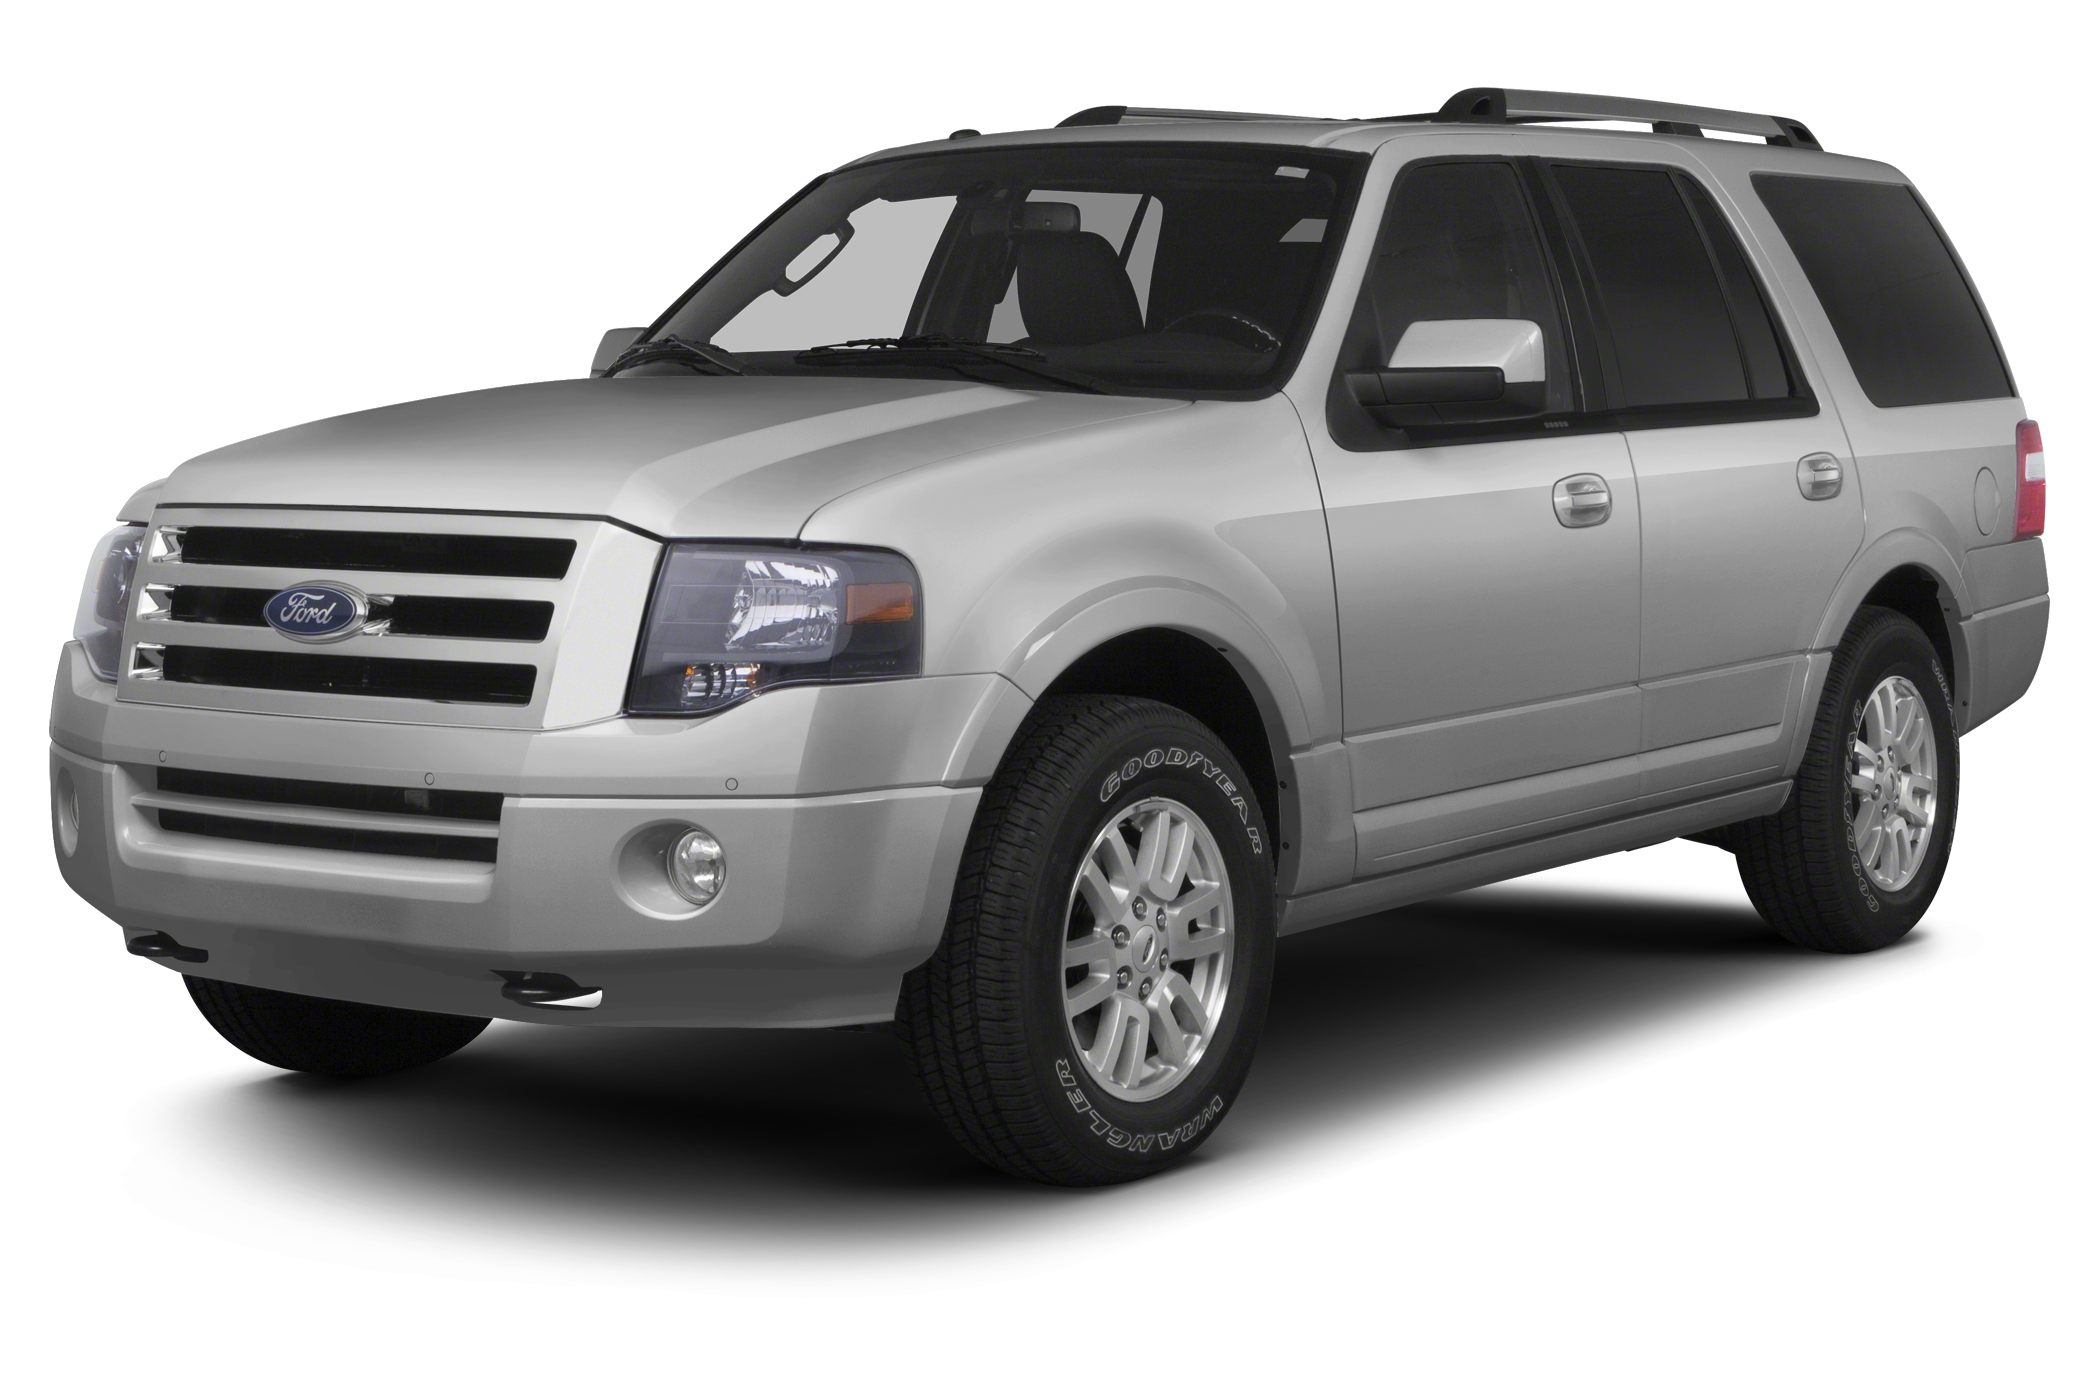 2013 Ford Expedition Limited SUV for sale in Scottsdale for $37,991 with 19,975 miles.